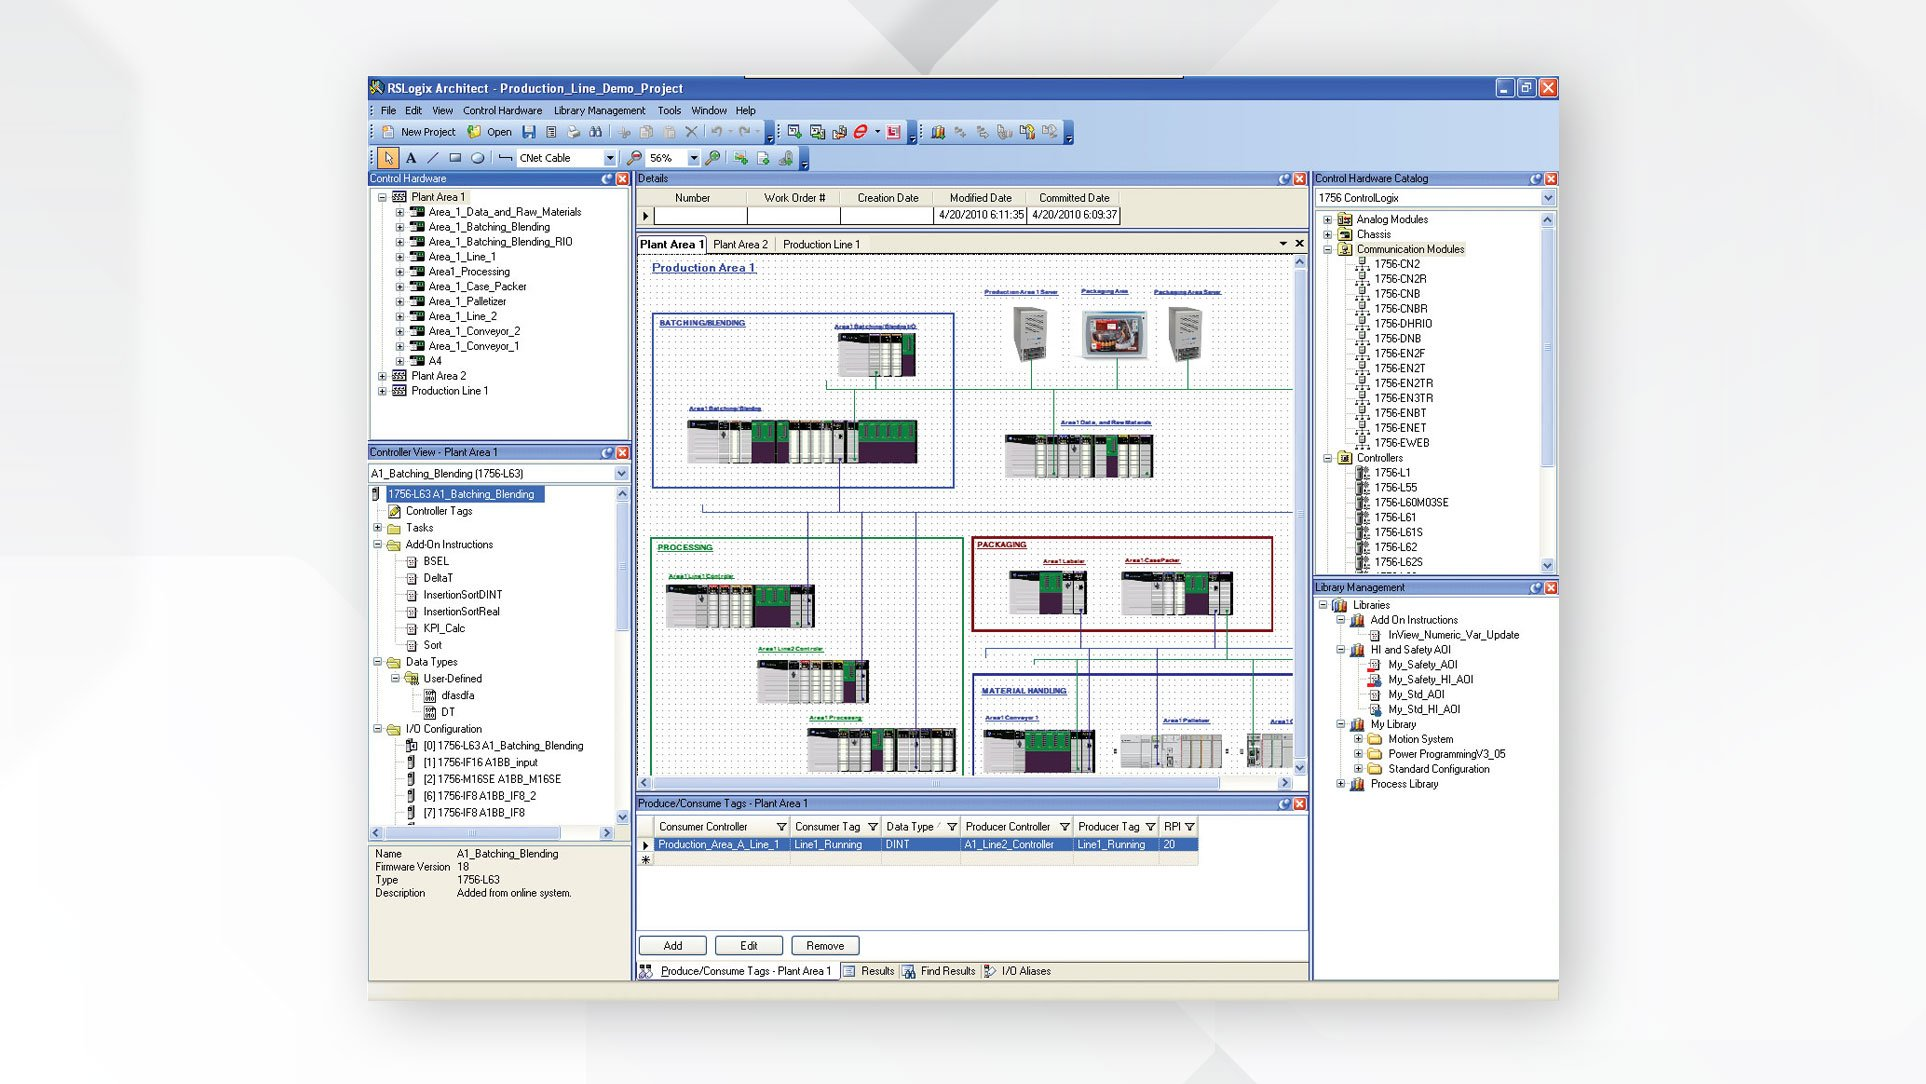 screenshot of add-on profiles interface